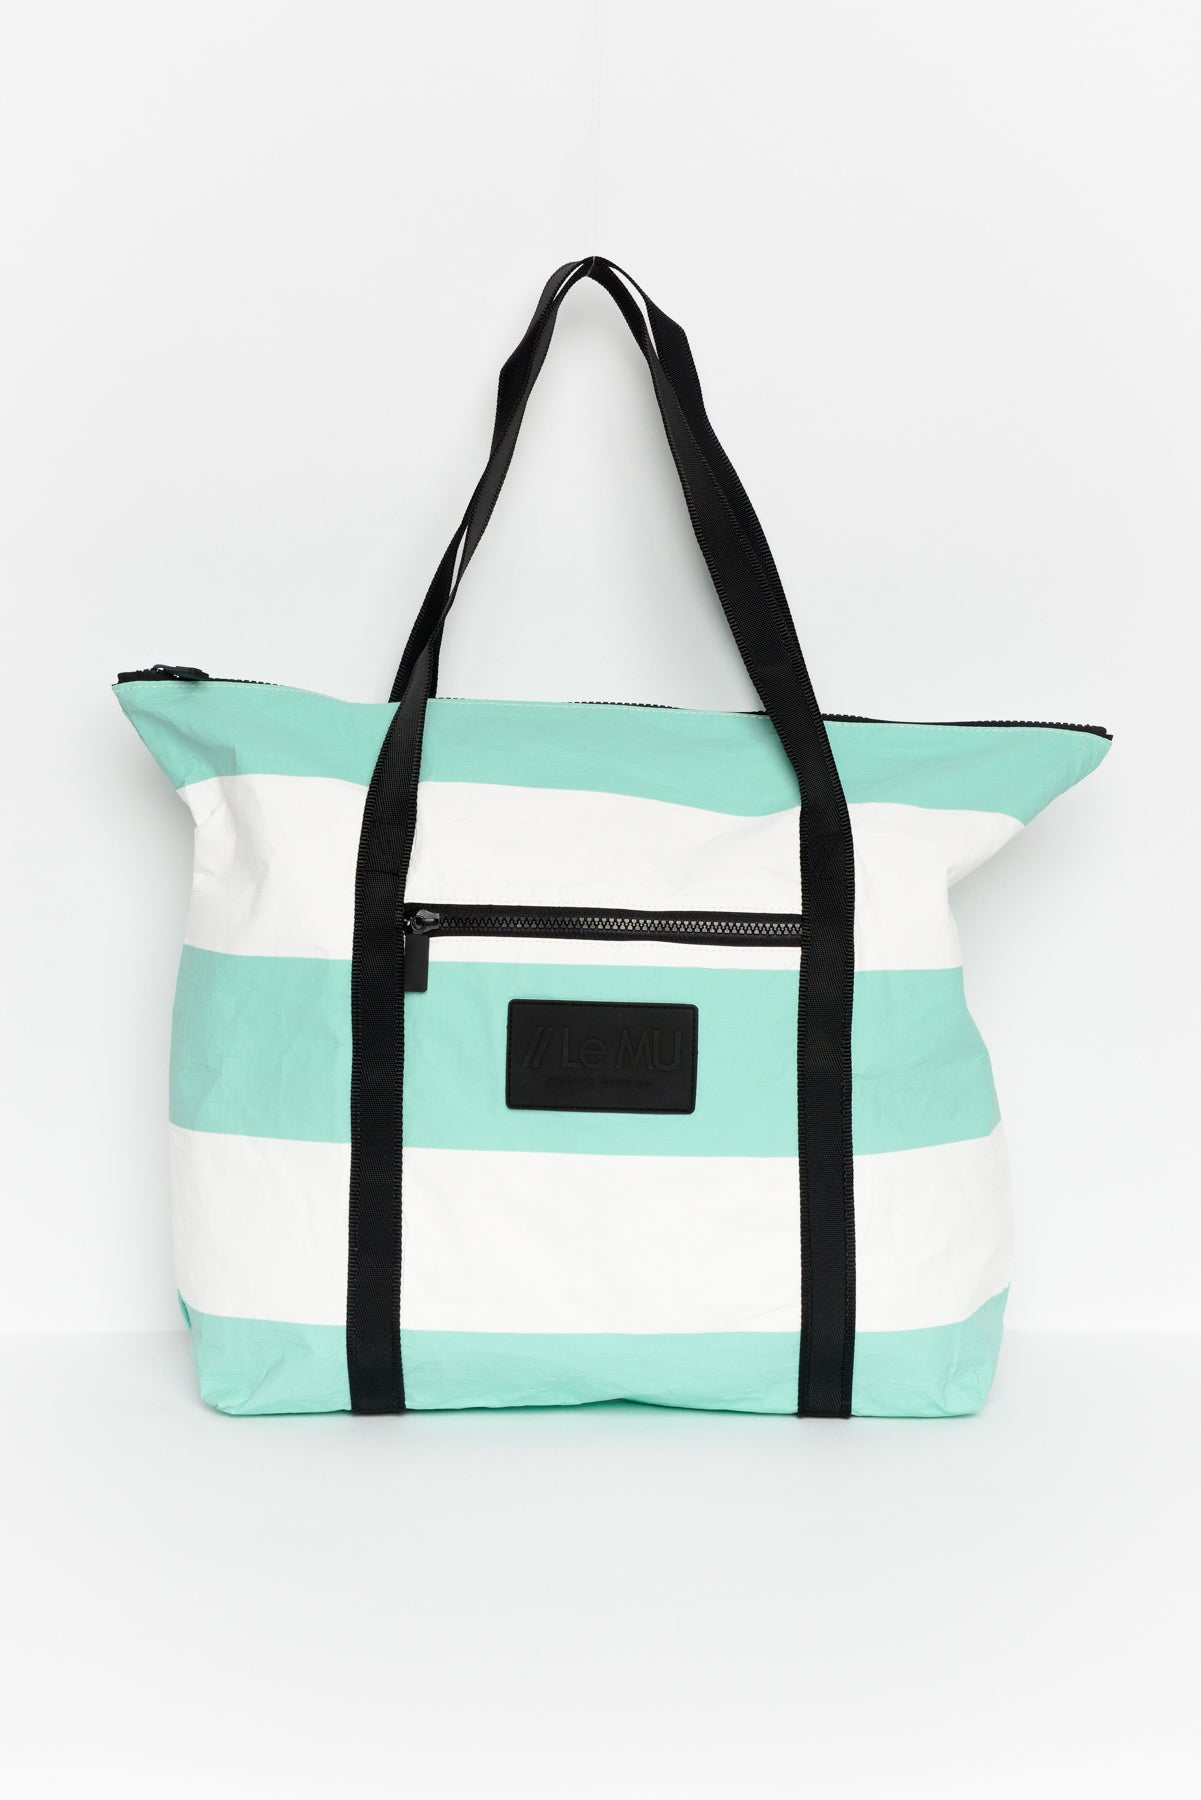 The Splash Proof Tote Bag travel product recommended by Leanne Thongthip on Lifney.